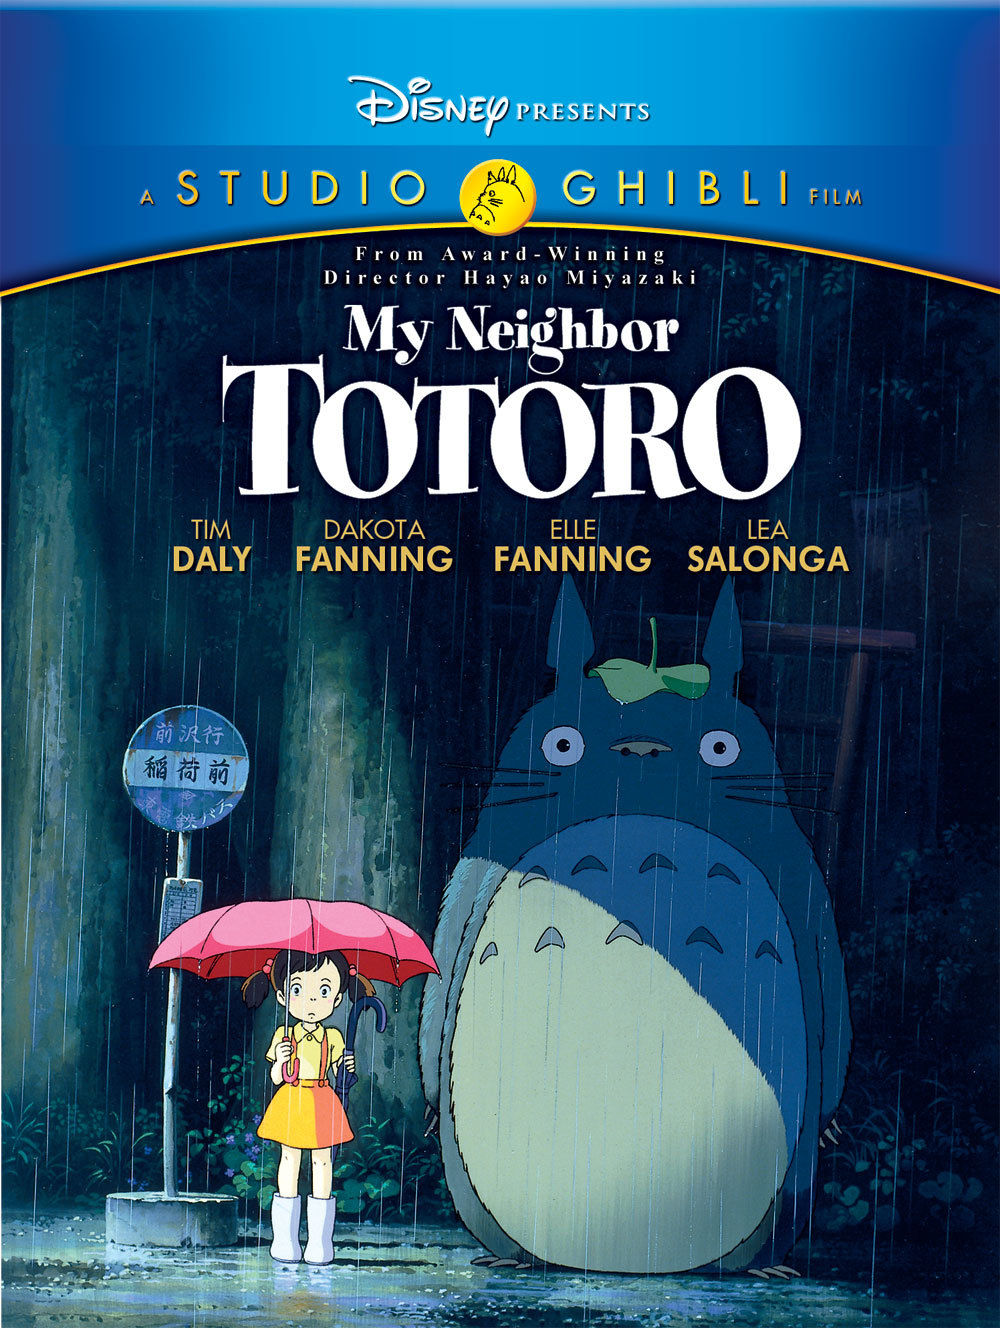 my neighbour tororo film font